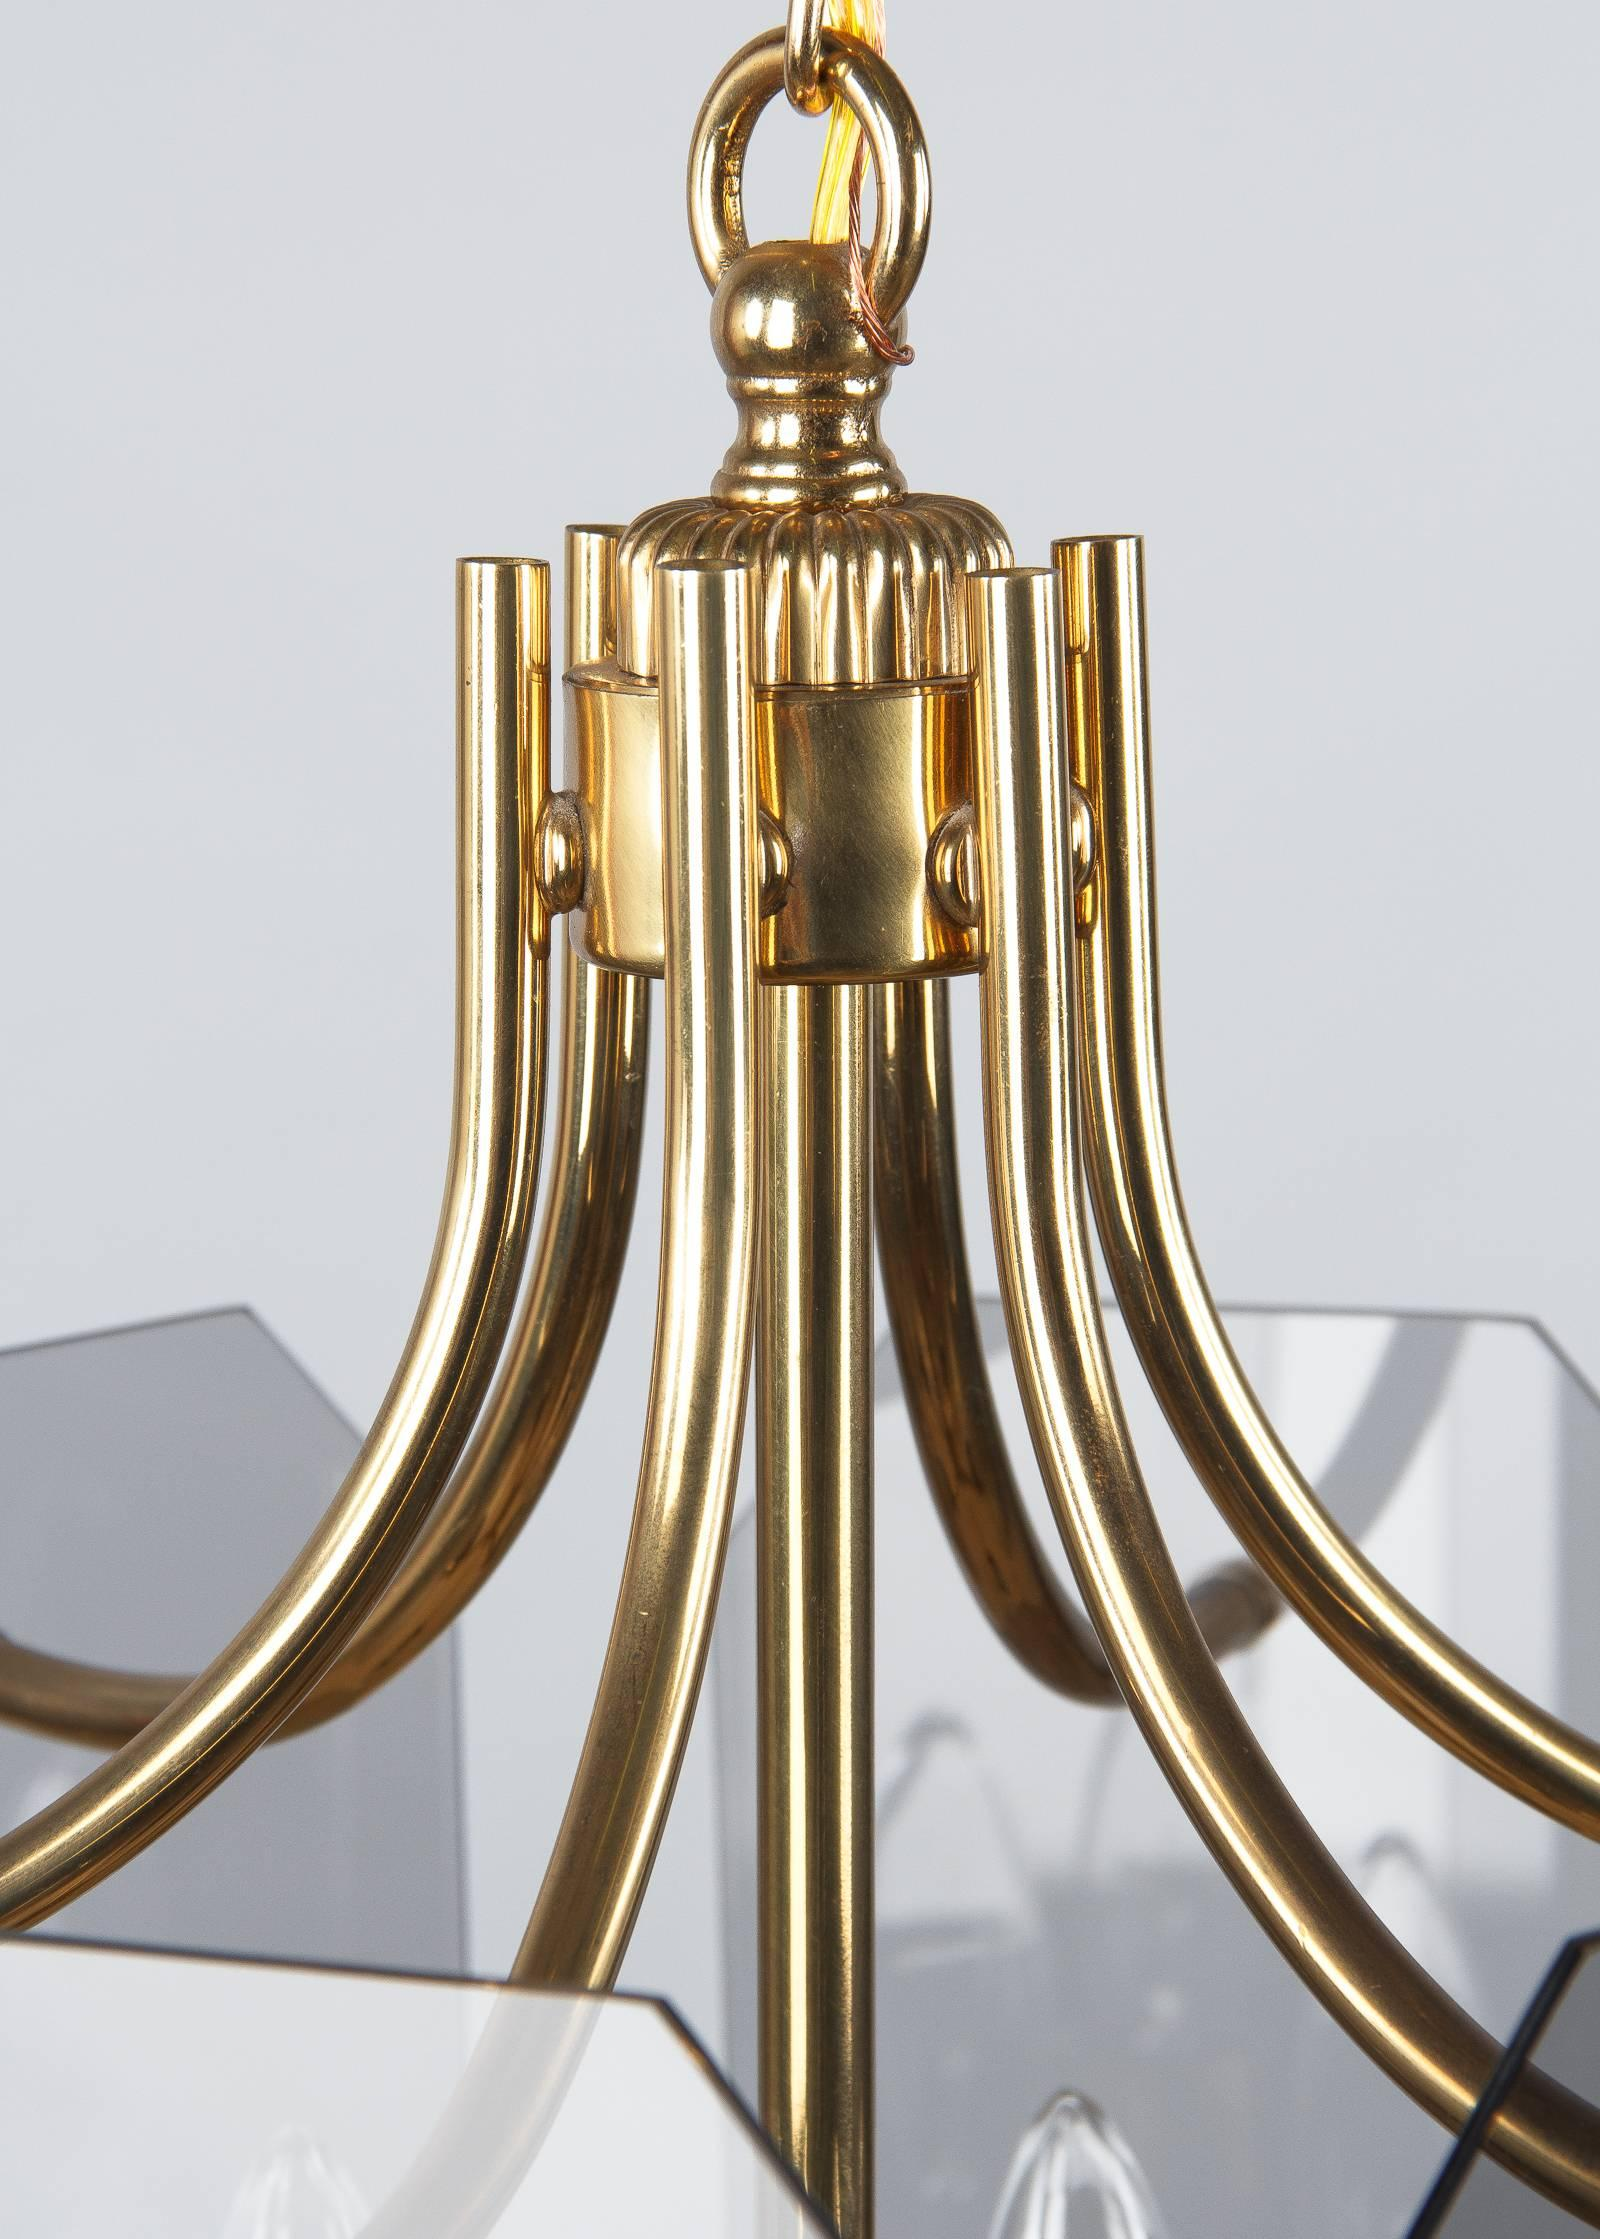 Distinctive Brass Etched Glass Chandelier, France 60s